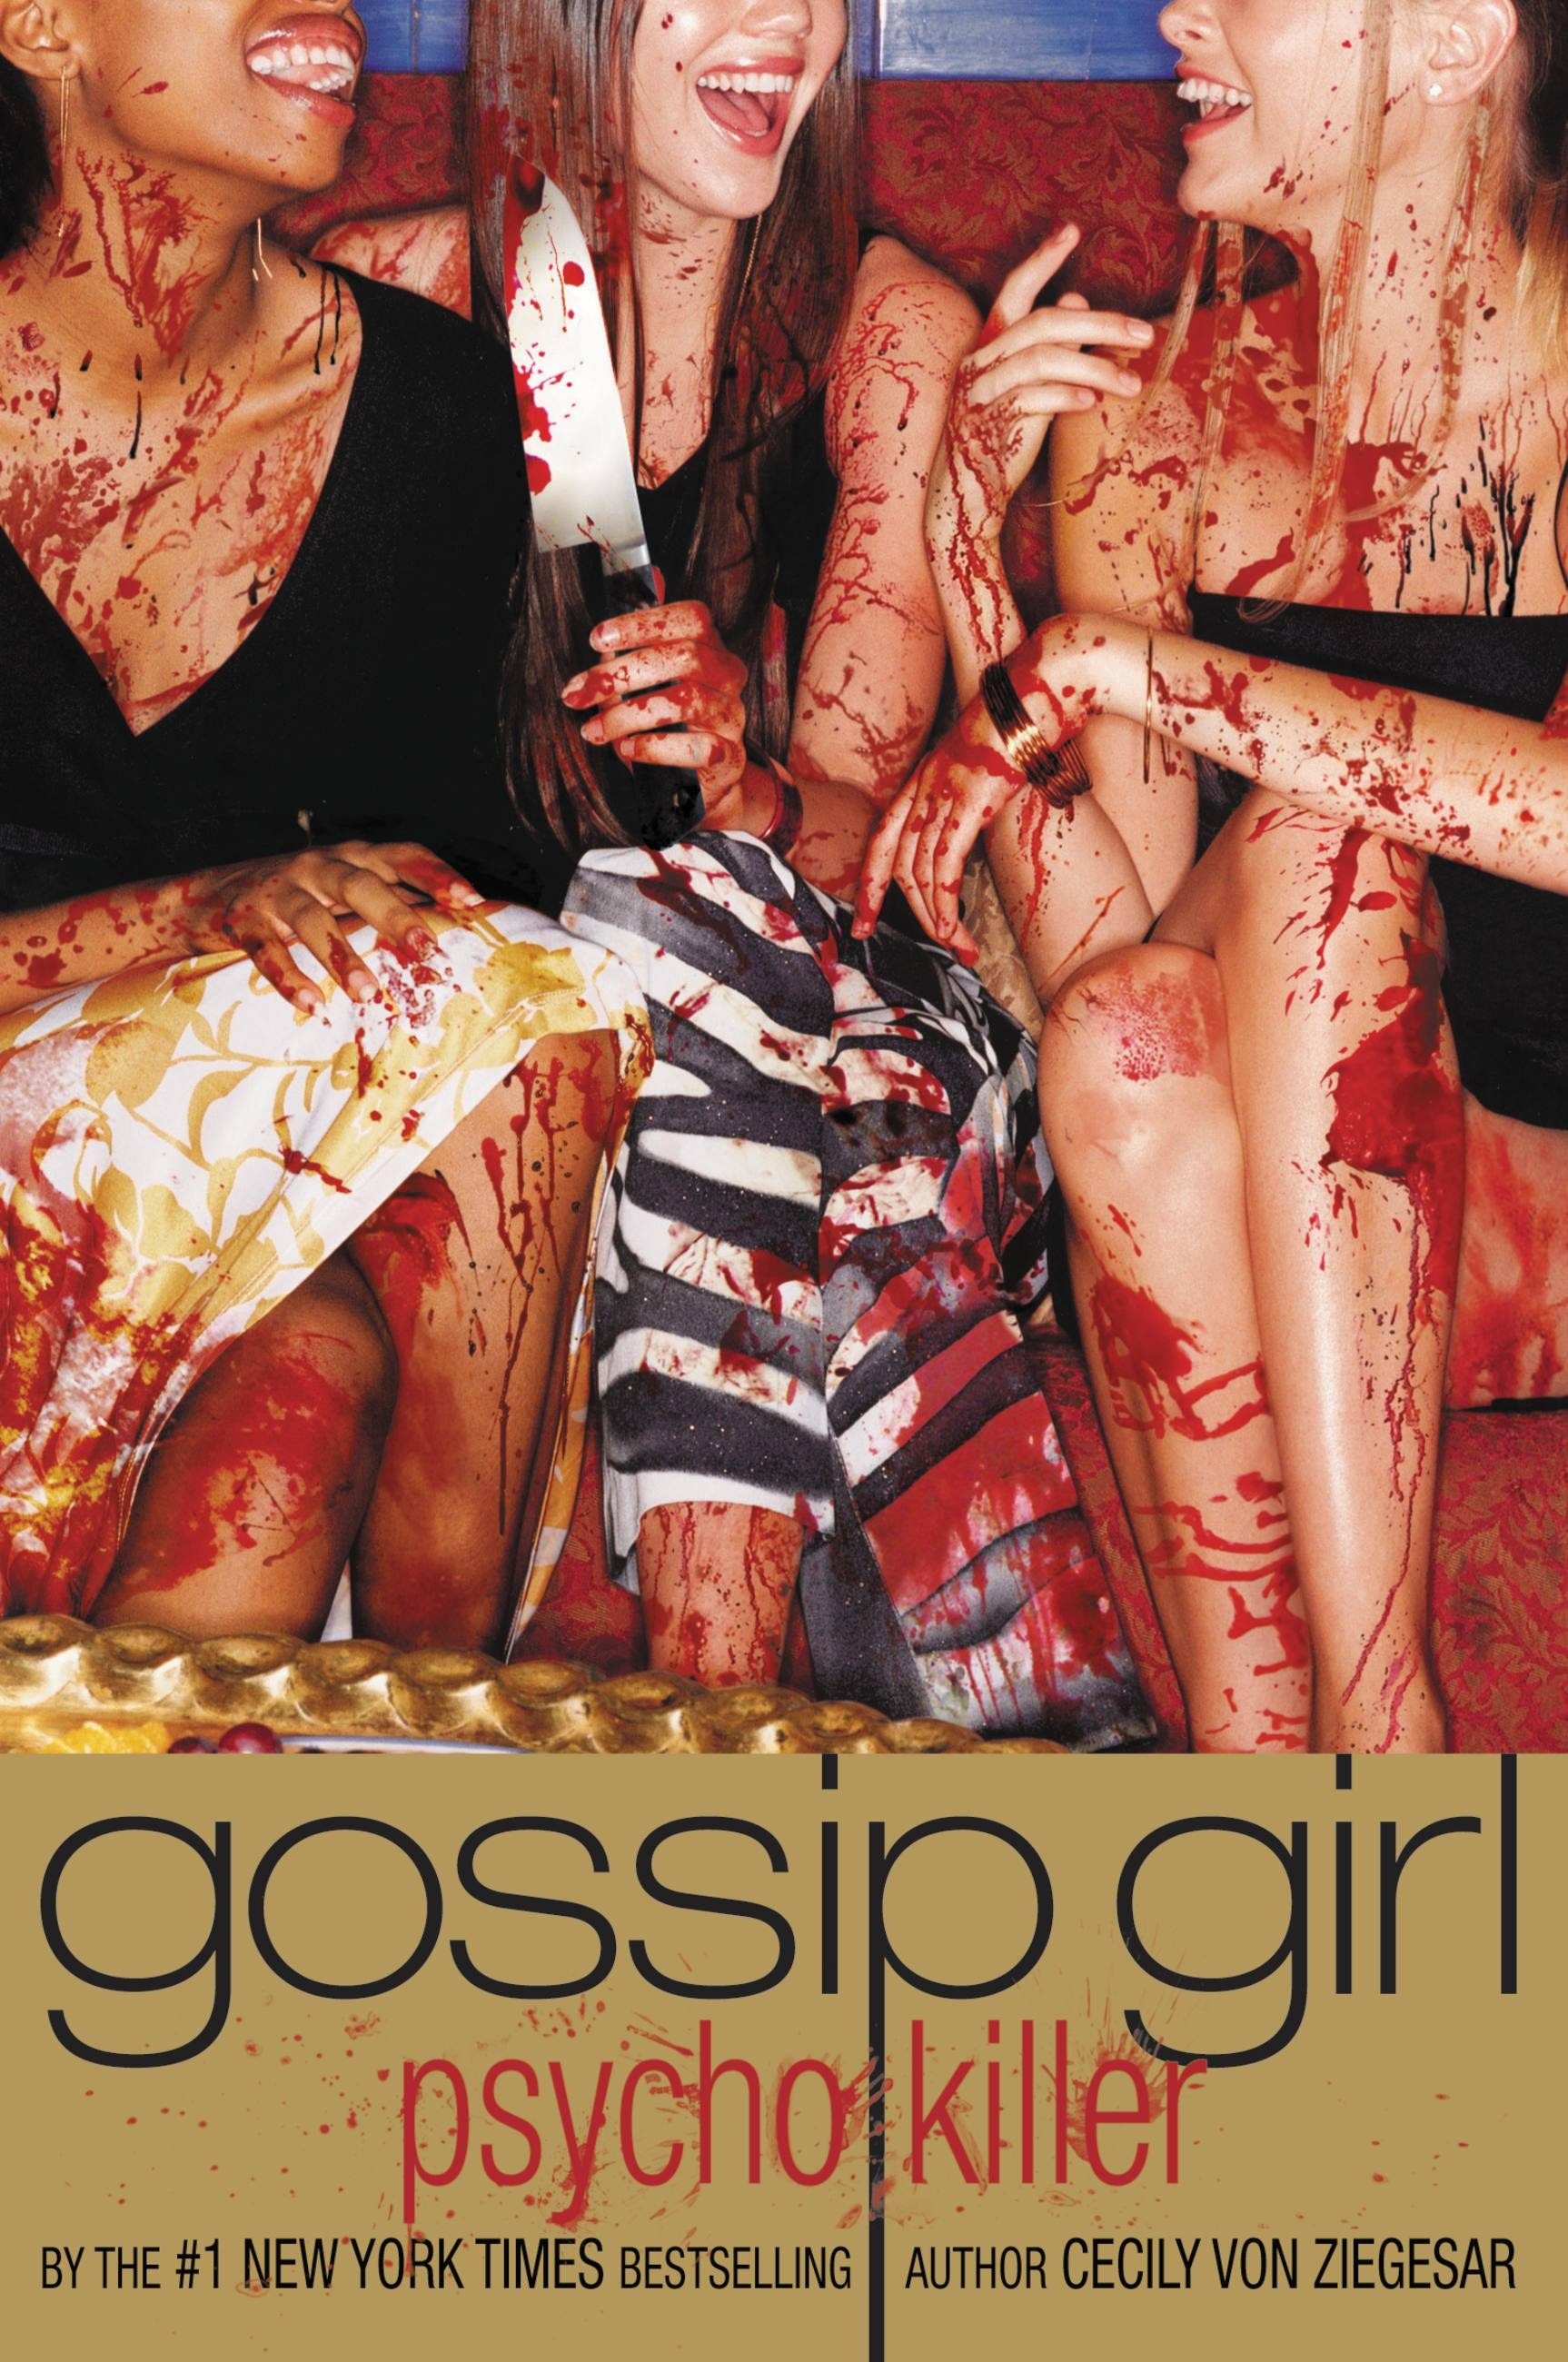 a summary of the novel gossip girl by cecily von ziegesar Unlike most editing & proofreading services, we edit for everything: grammar, spelling, punctuation, idea flow, sentence structure, & more get started now.